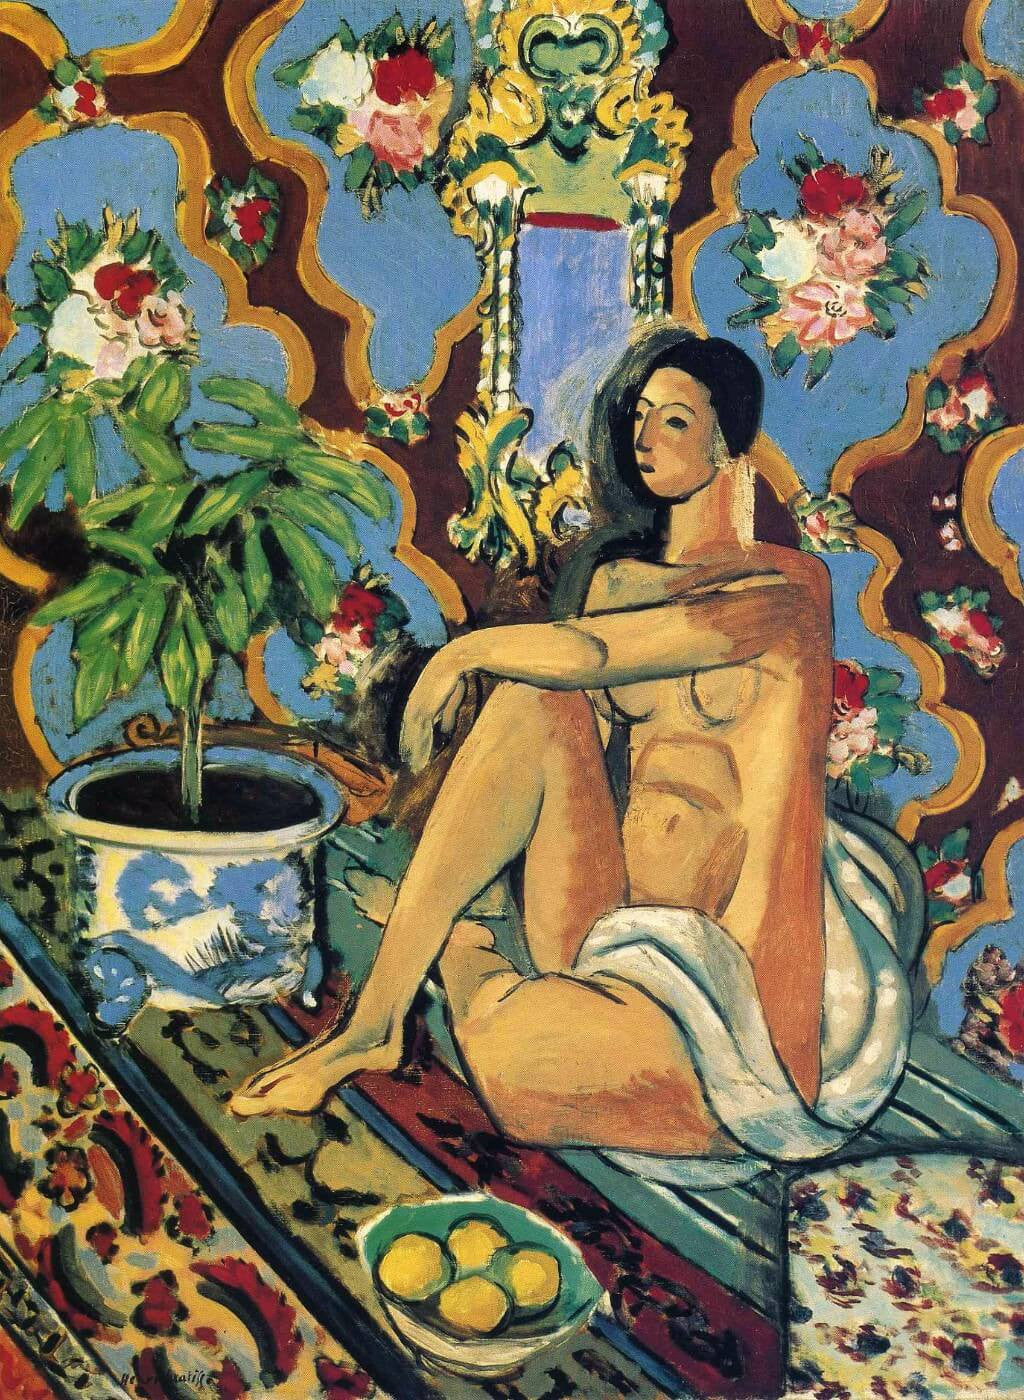 Henri Matisse | Buy Posters, Frames, Canvas, Digital Art & Large Size Prints Of The Famous Modern Master's Artworks